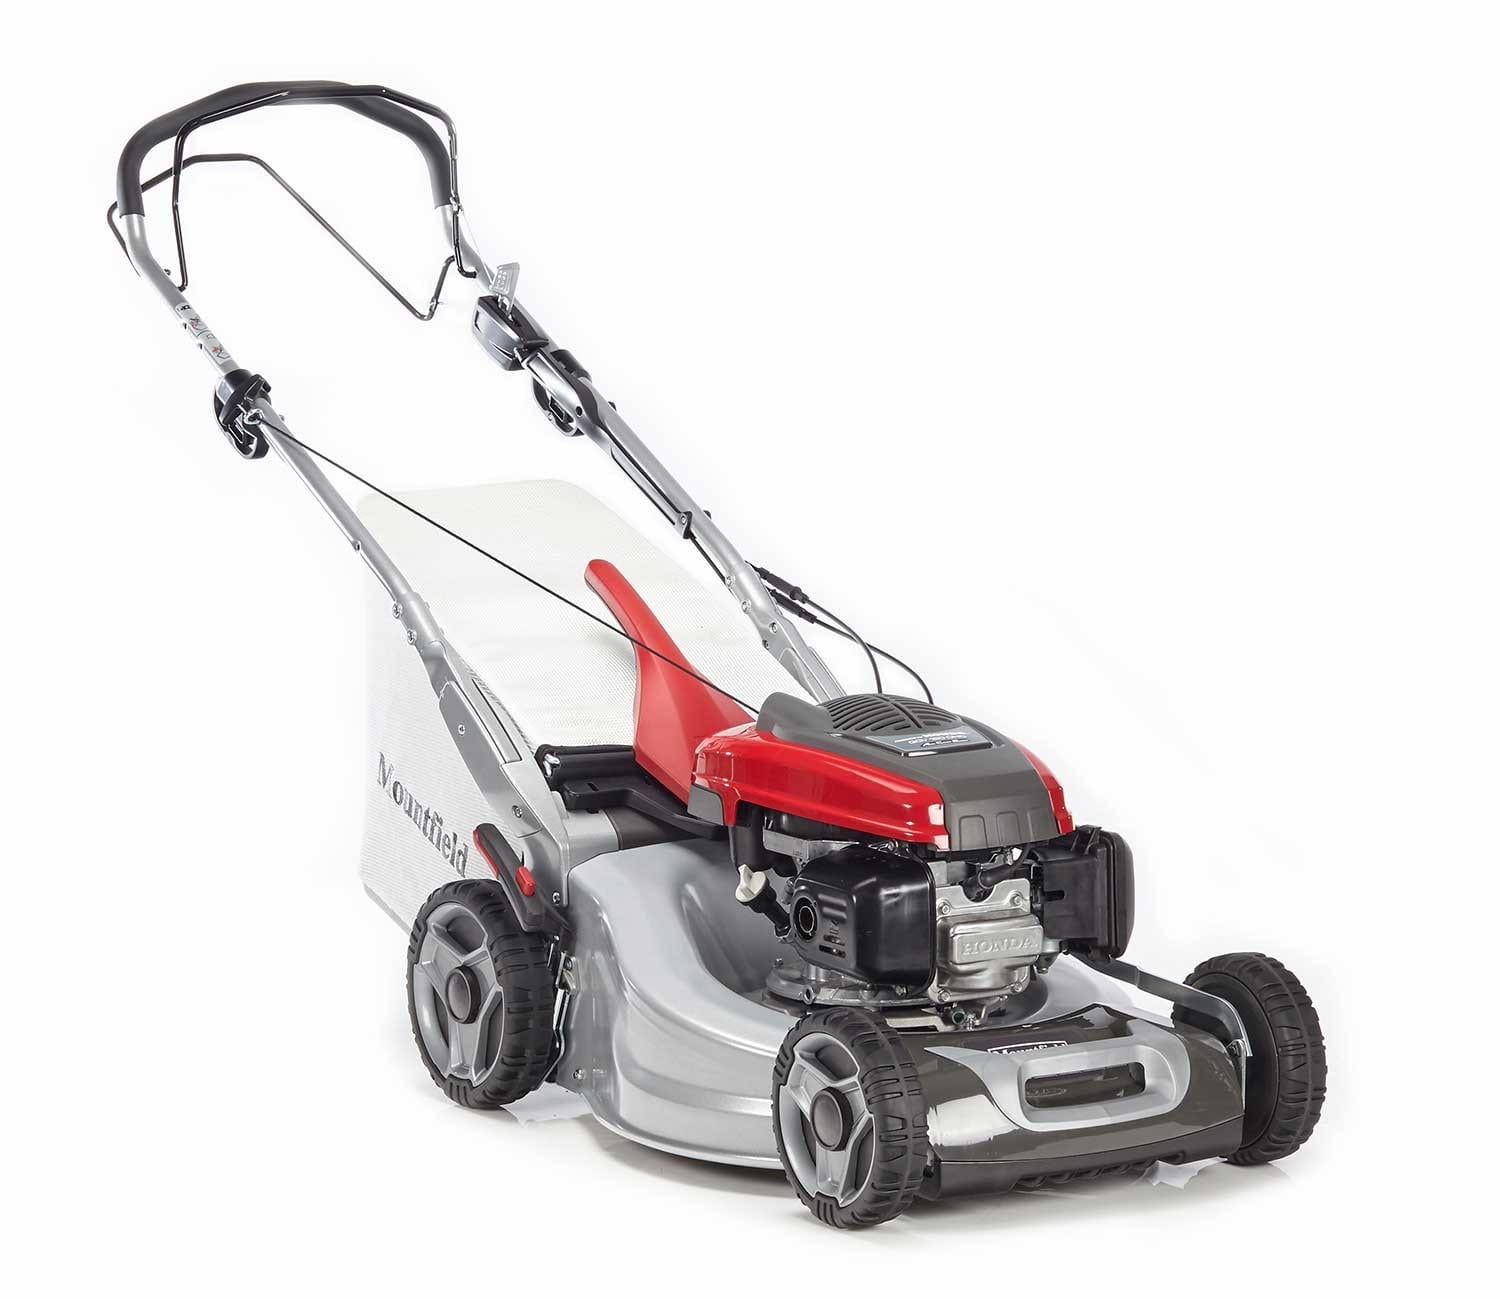 Mountfield SP535HW V 53cm Self-Propelled Lawnmower